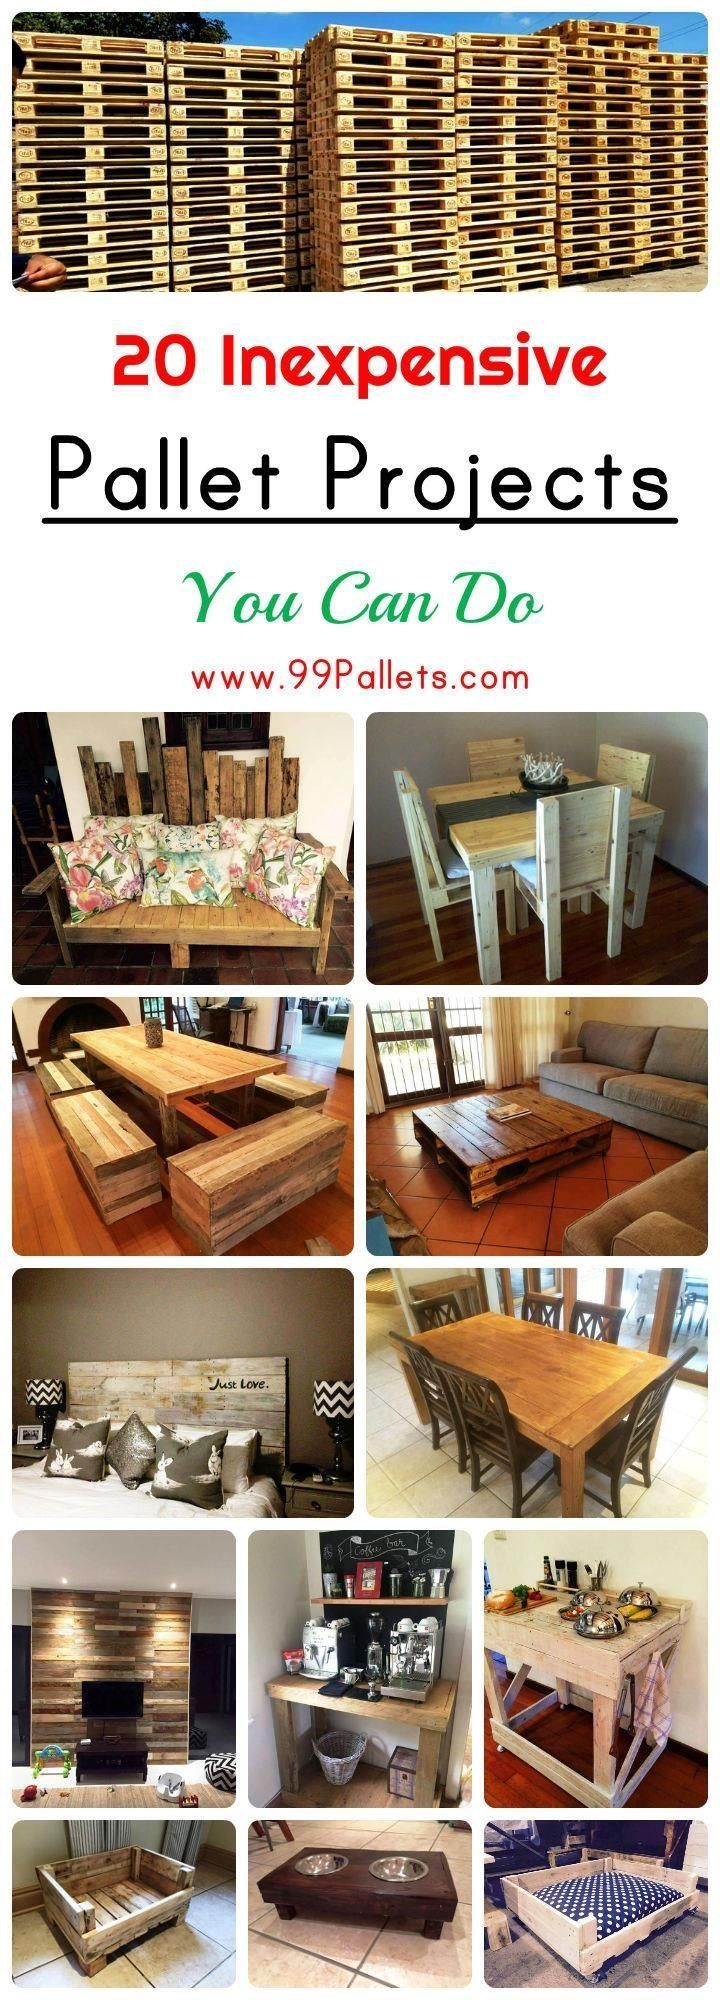 20 Inexpensive Pallet Projects You Can Do Diy Pallet Projects